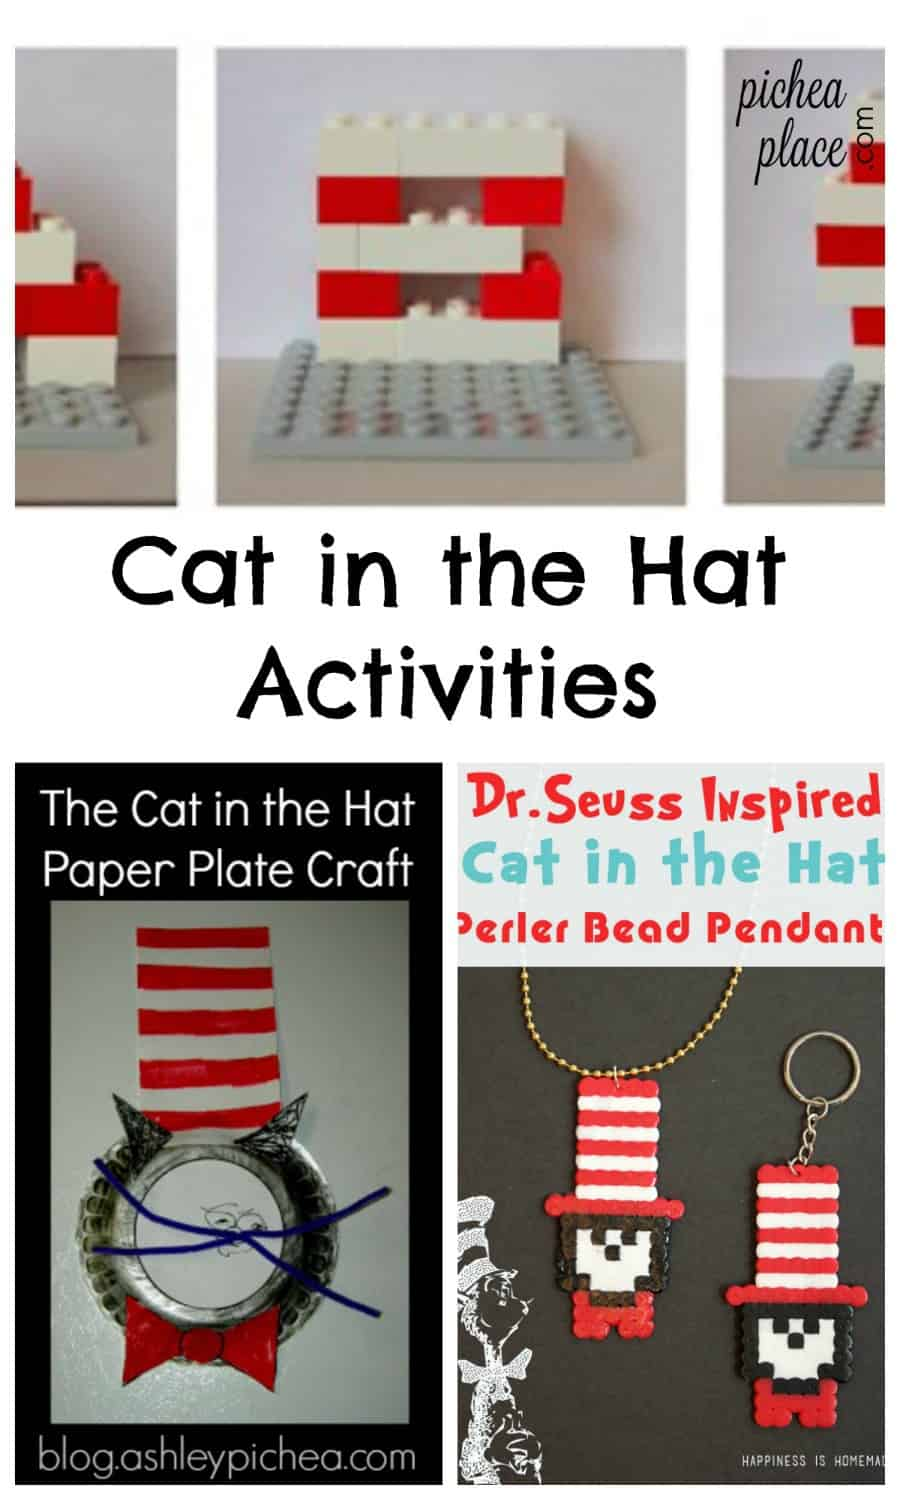 Cat in the Hat activities for kids | Dr Seuss activities for kids